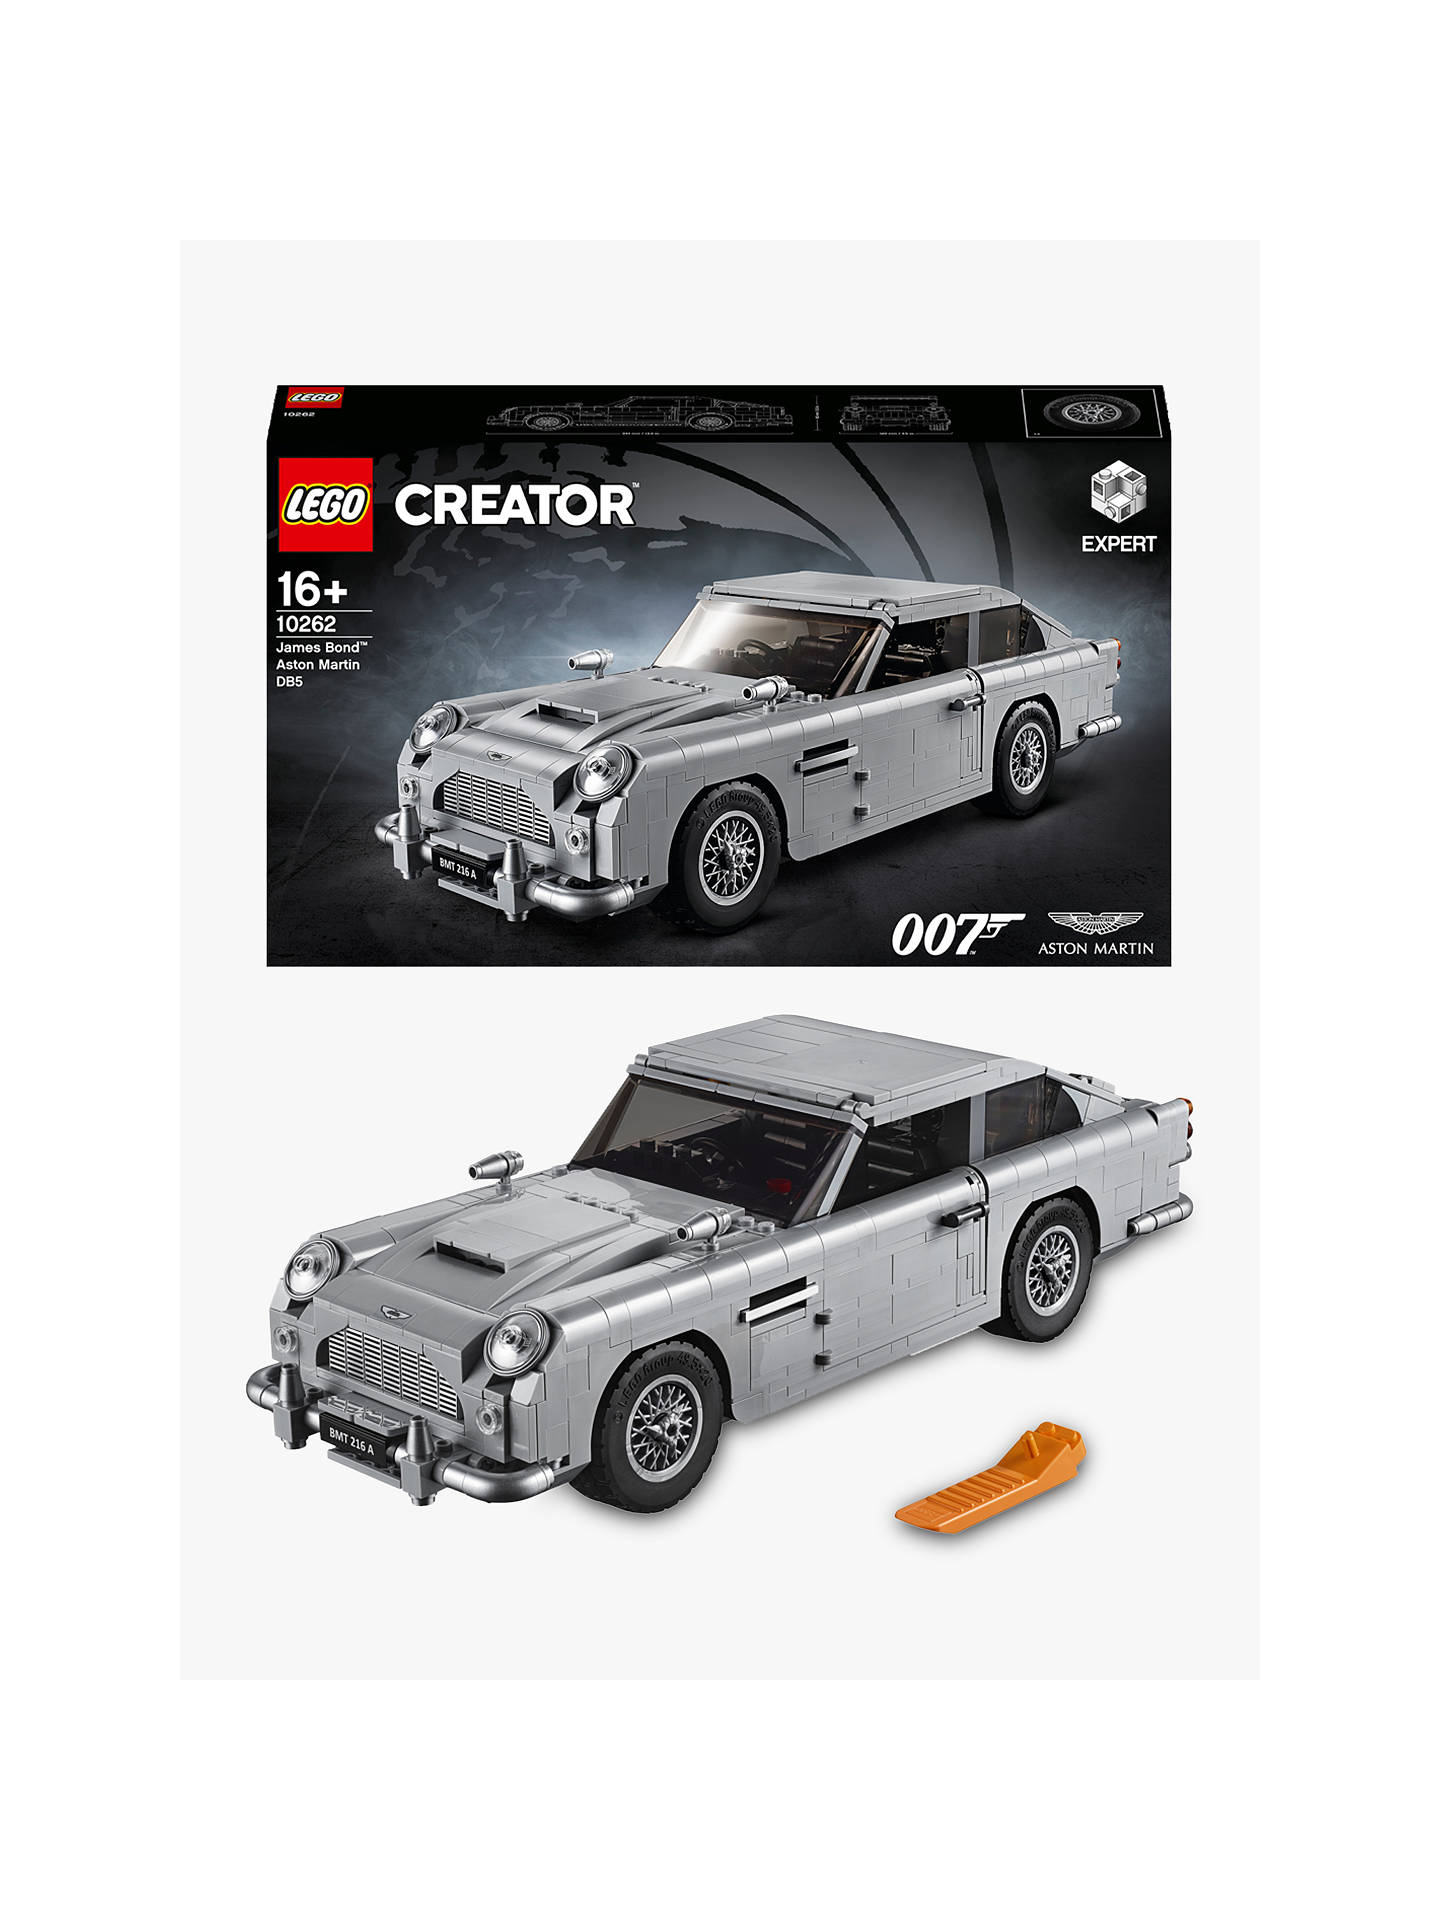 Lego Creator 10262 James Bond Aston Martin Db5 by Lego